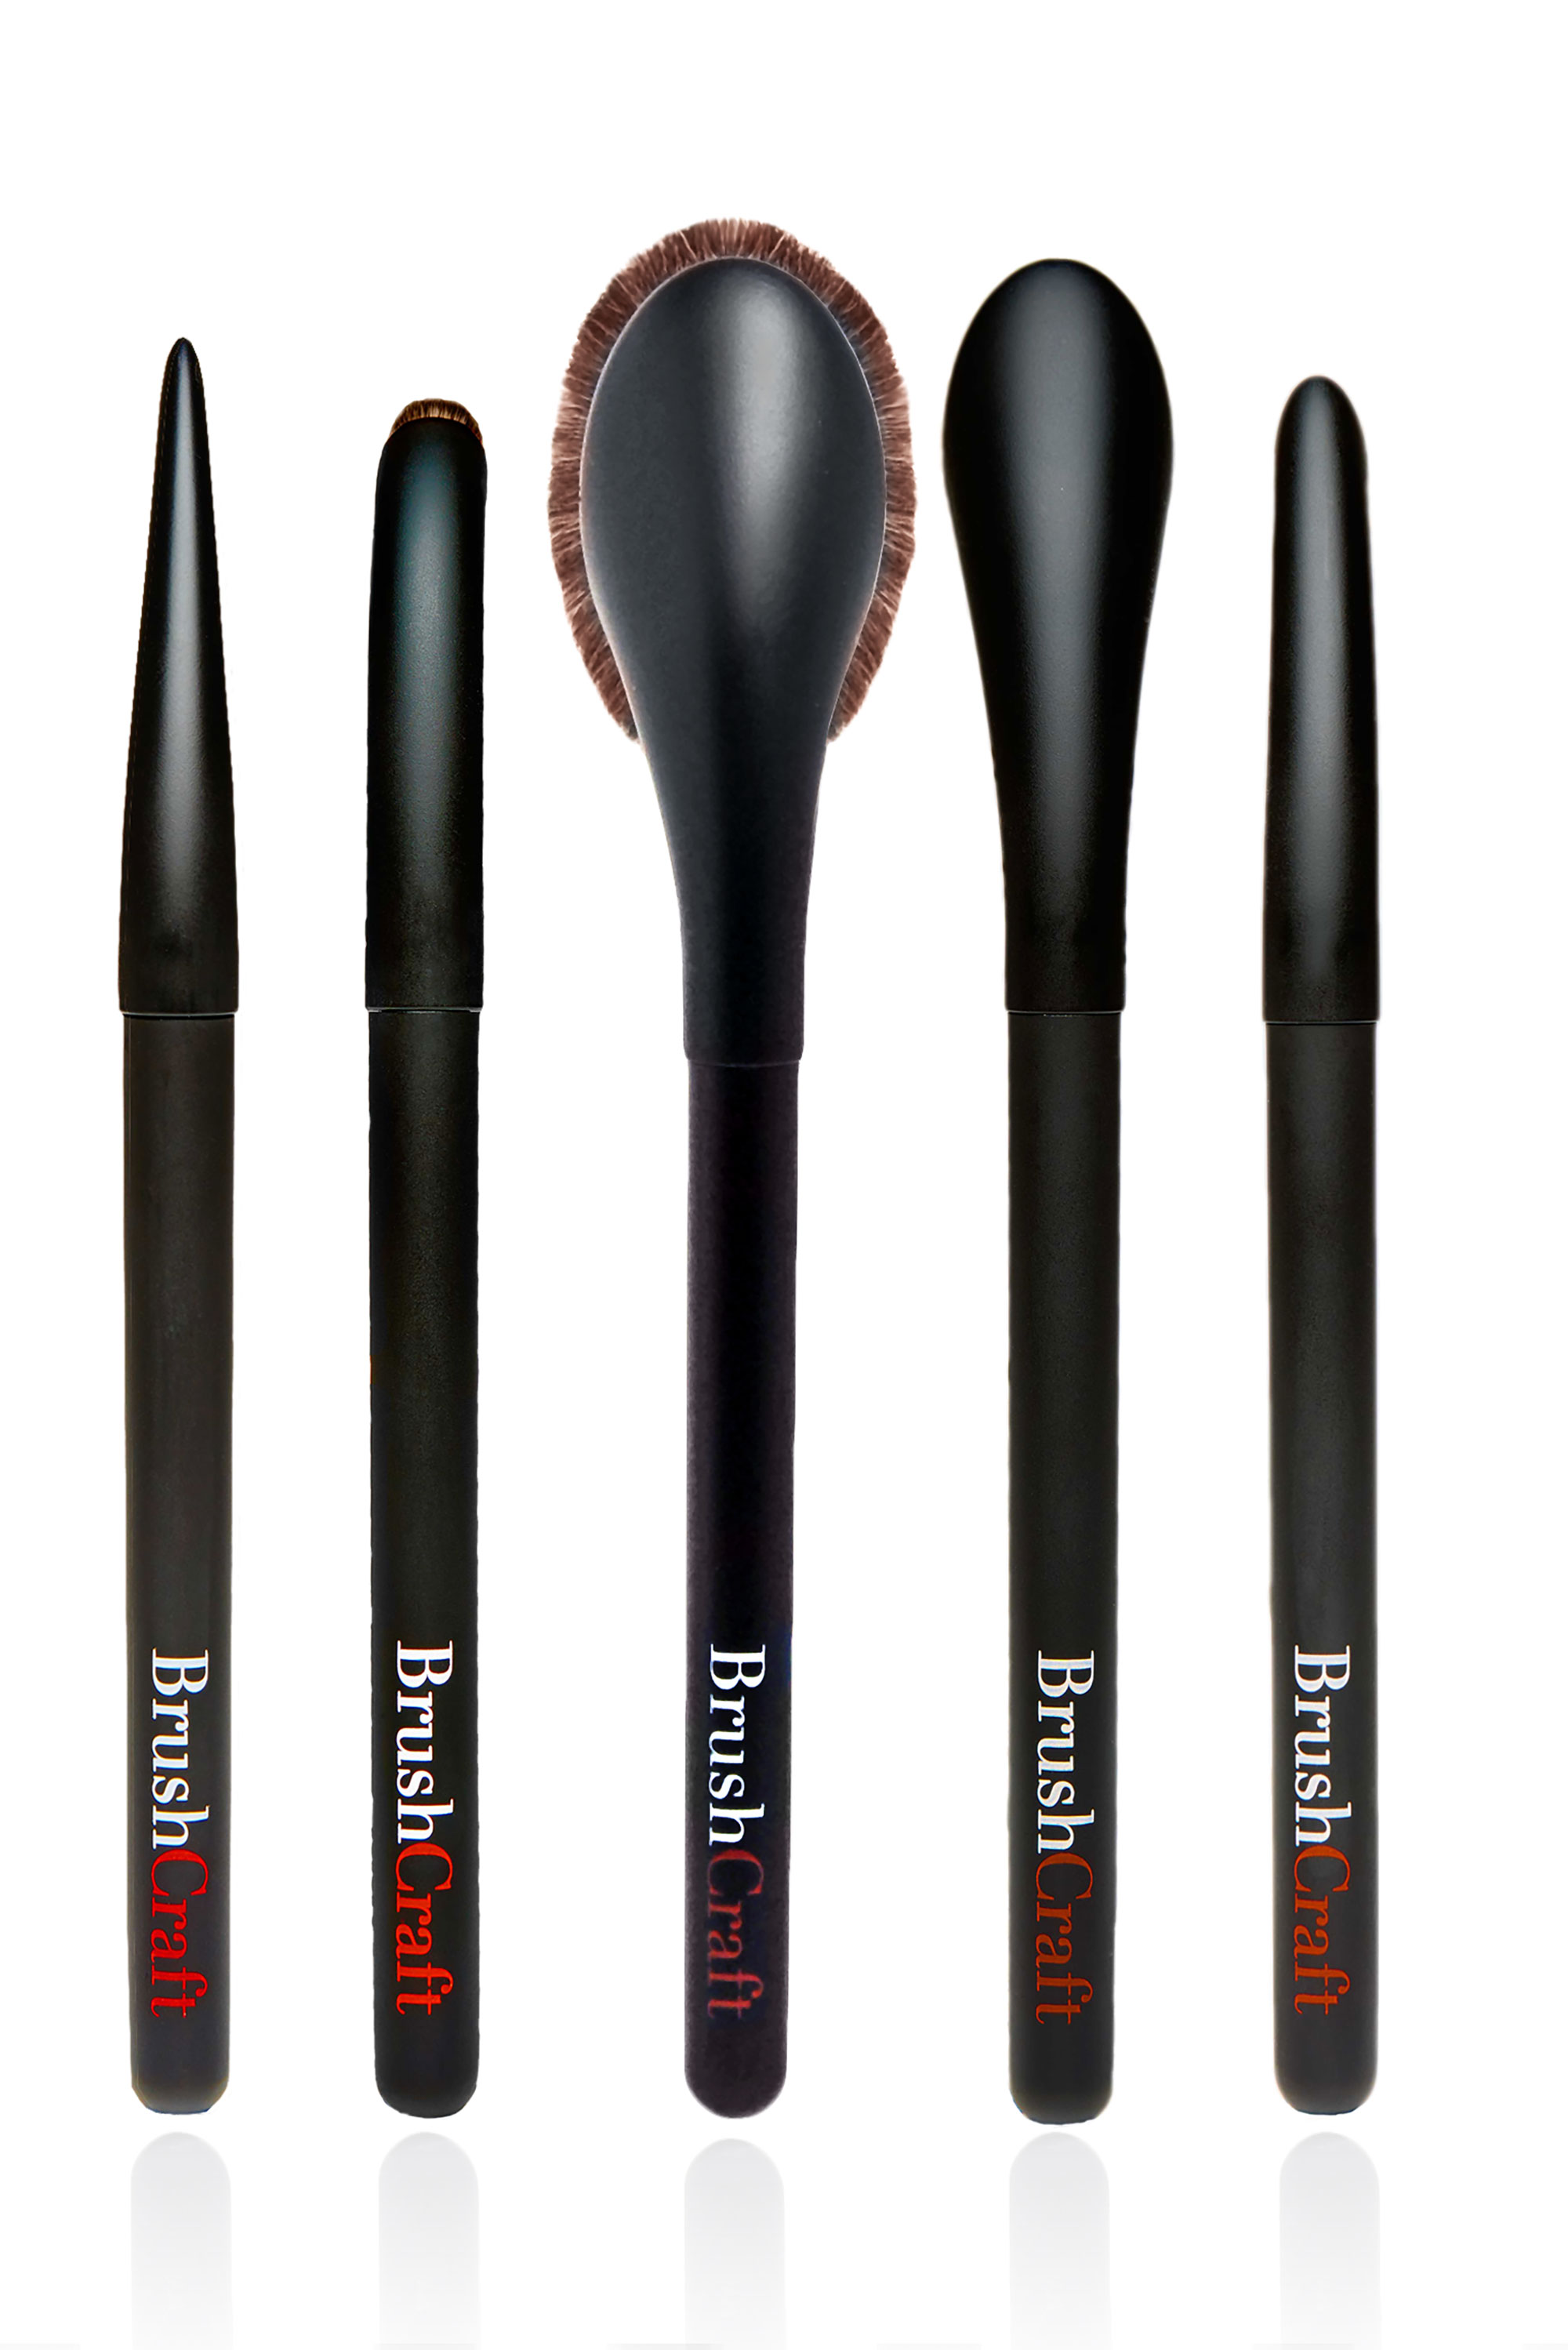 Women's History Month Gallery - In case you need an excuse to (finally!) swap out your old makeup brushes, the high-tech tools line is donating 100 percent of the profits from its BrushCraft collection (which is currently on sale for 50 percent off!) to Step Up and other organizations dedicated to helping women and girls thrive. from $9.25, artisbrush.com